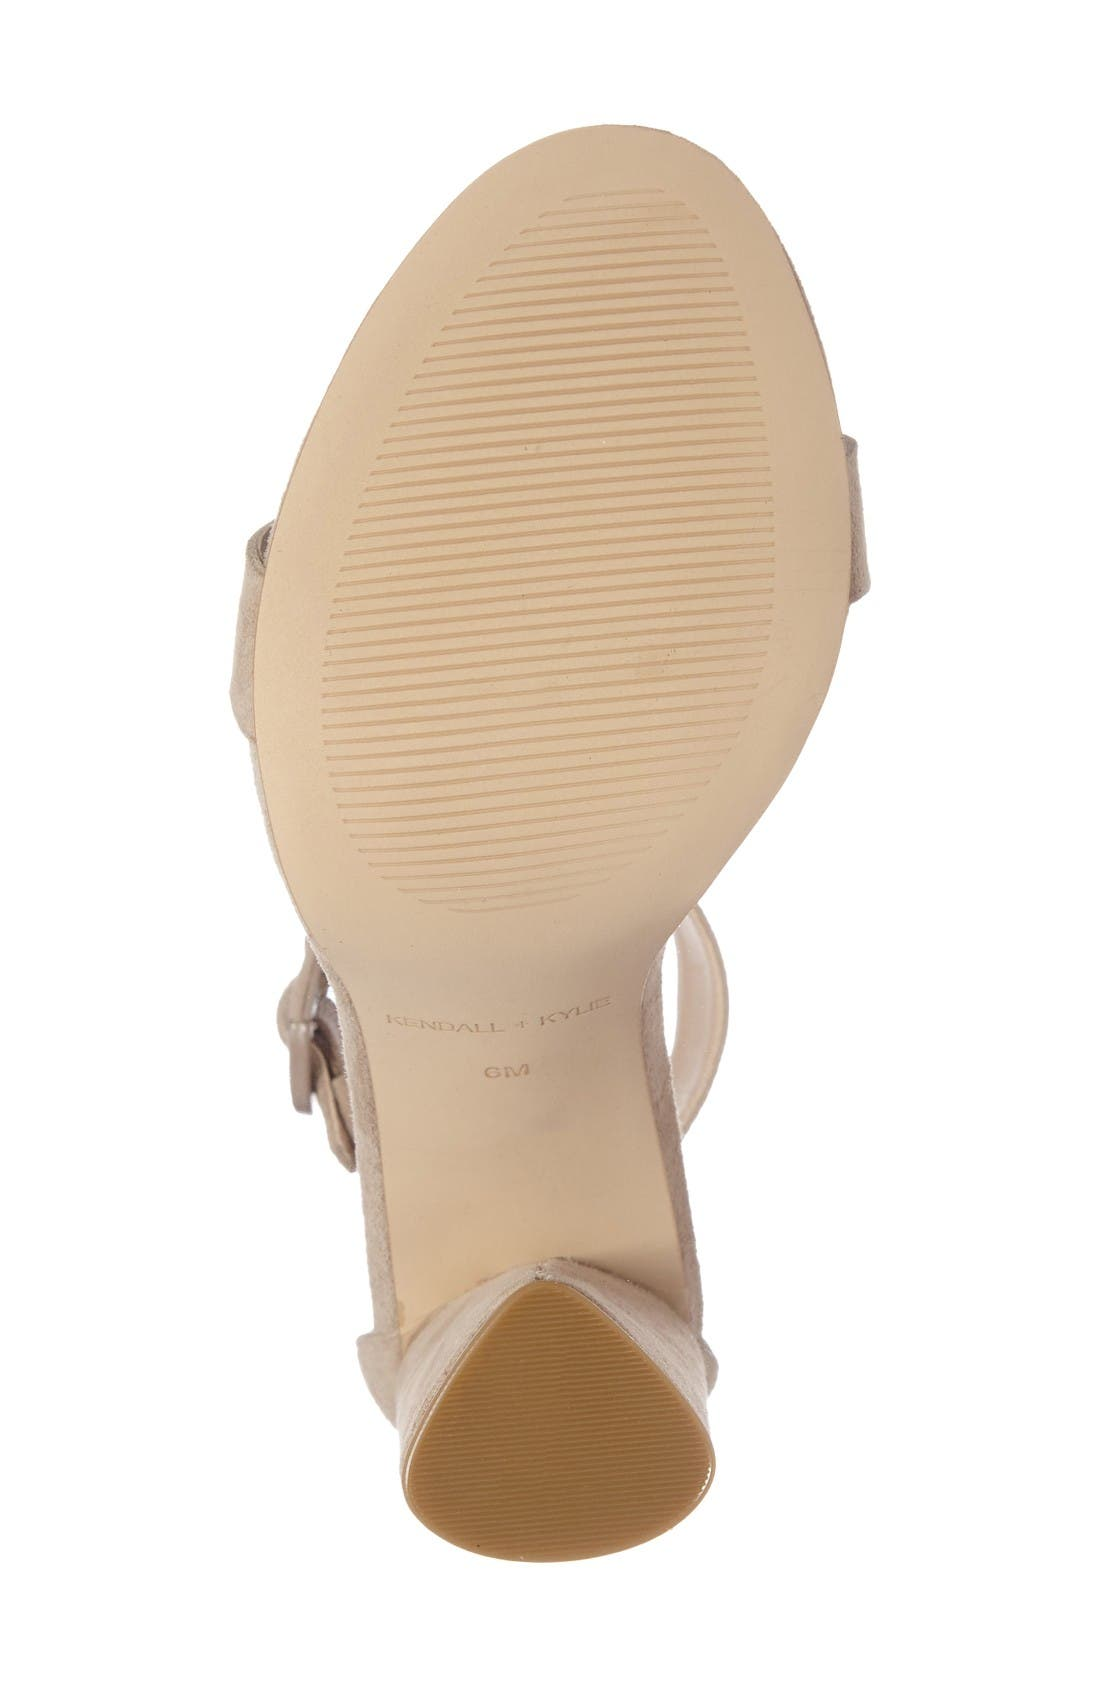 Giselle Strappy Sandal,                             Alternate thumbnail 4, color,                             Sughero Suede